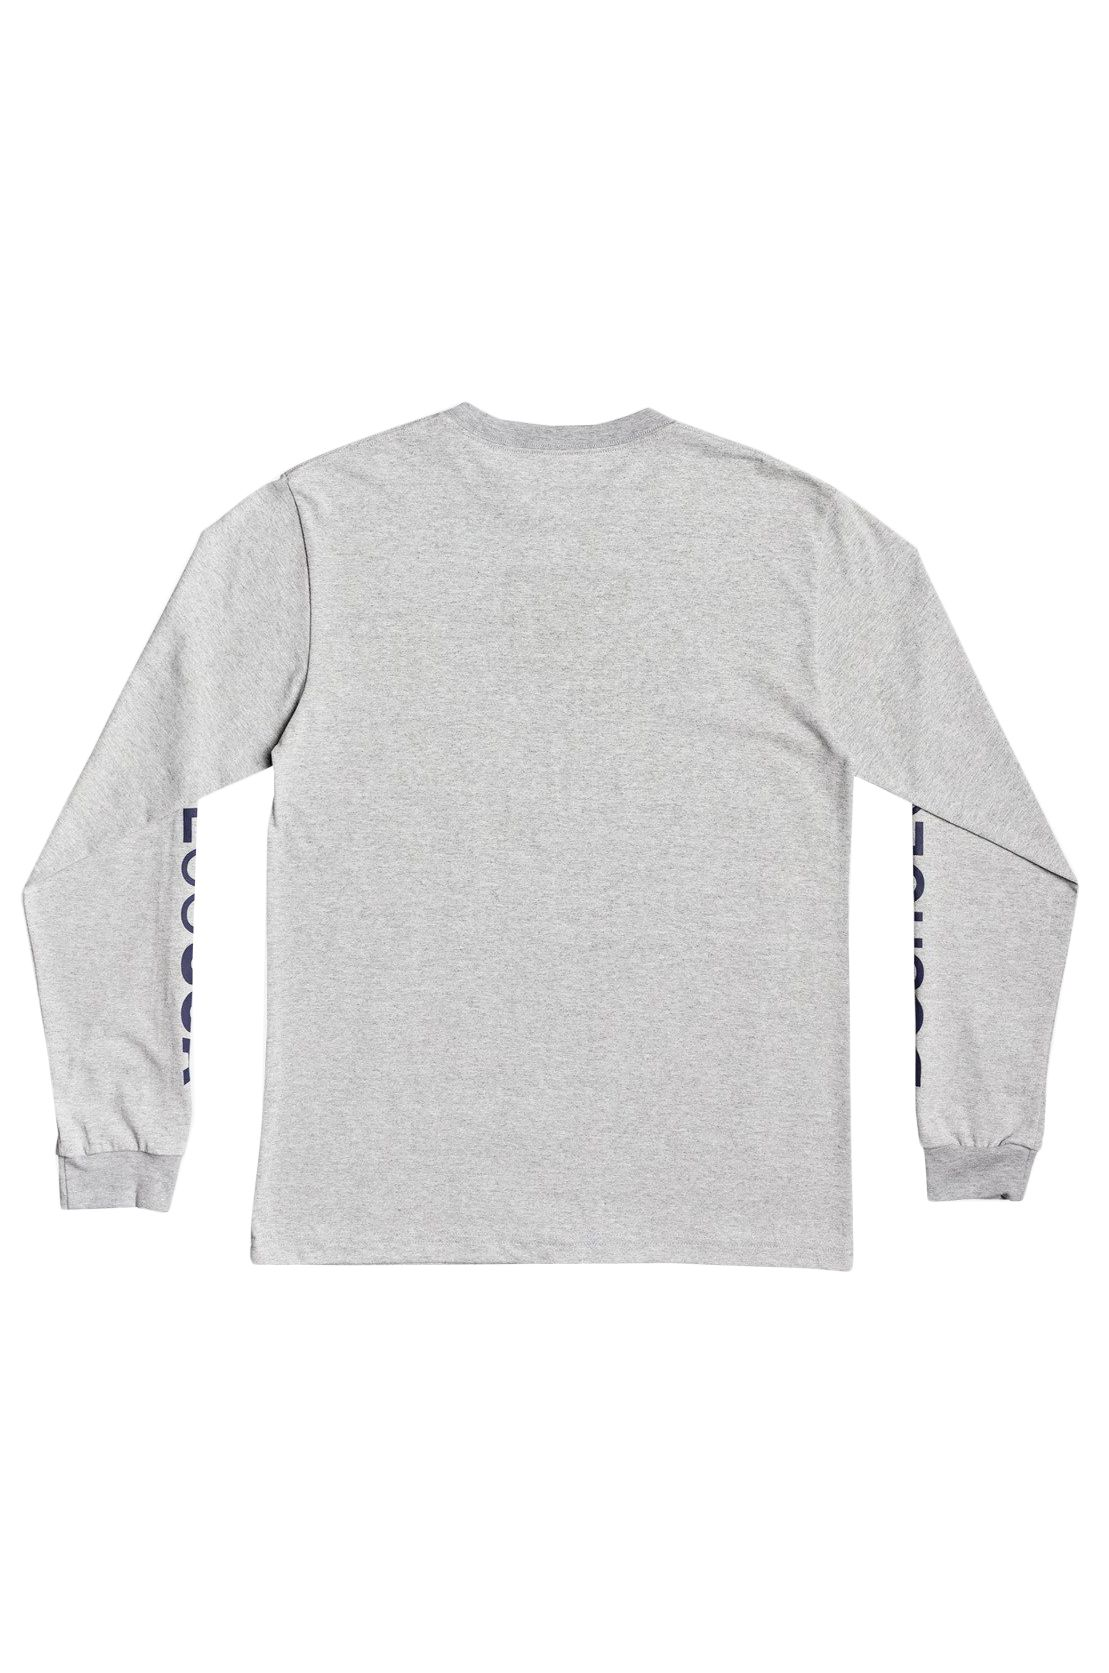 L-Sleeve DC Shoes SQUARE STAR LS BOY Heather Grey